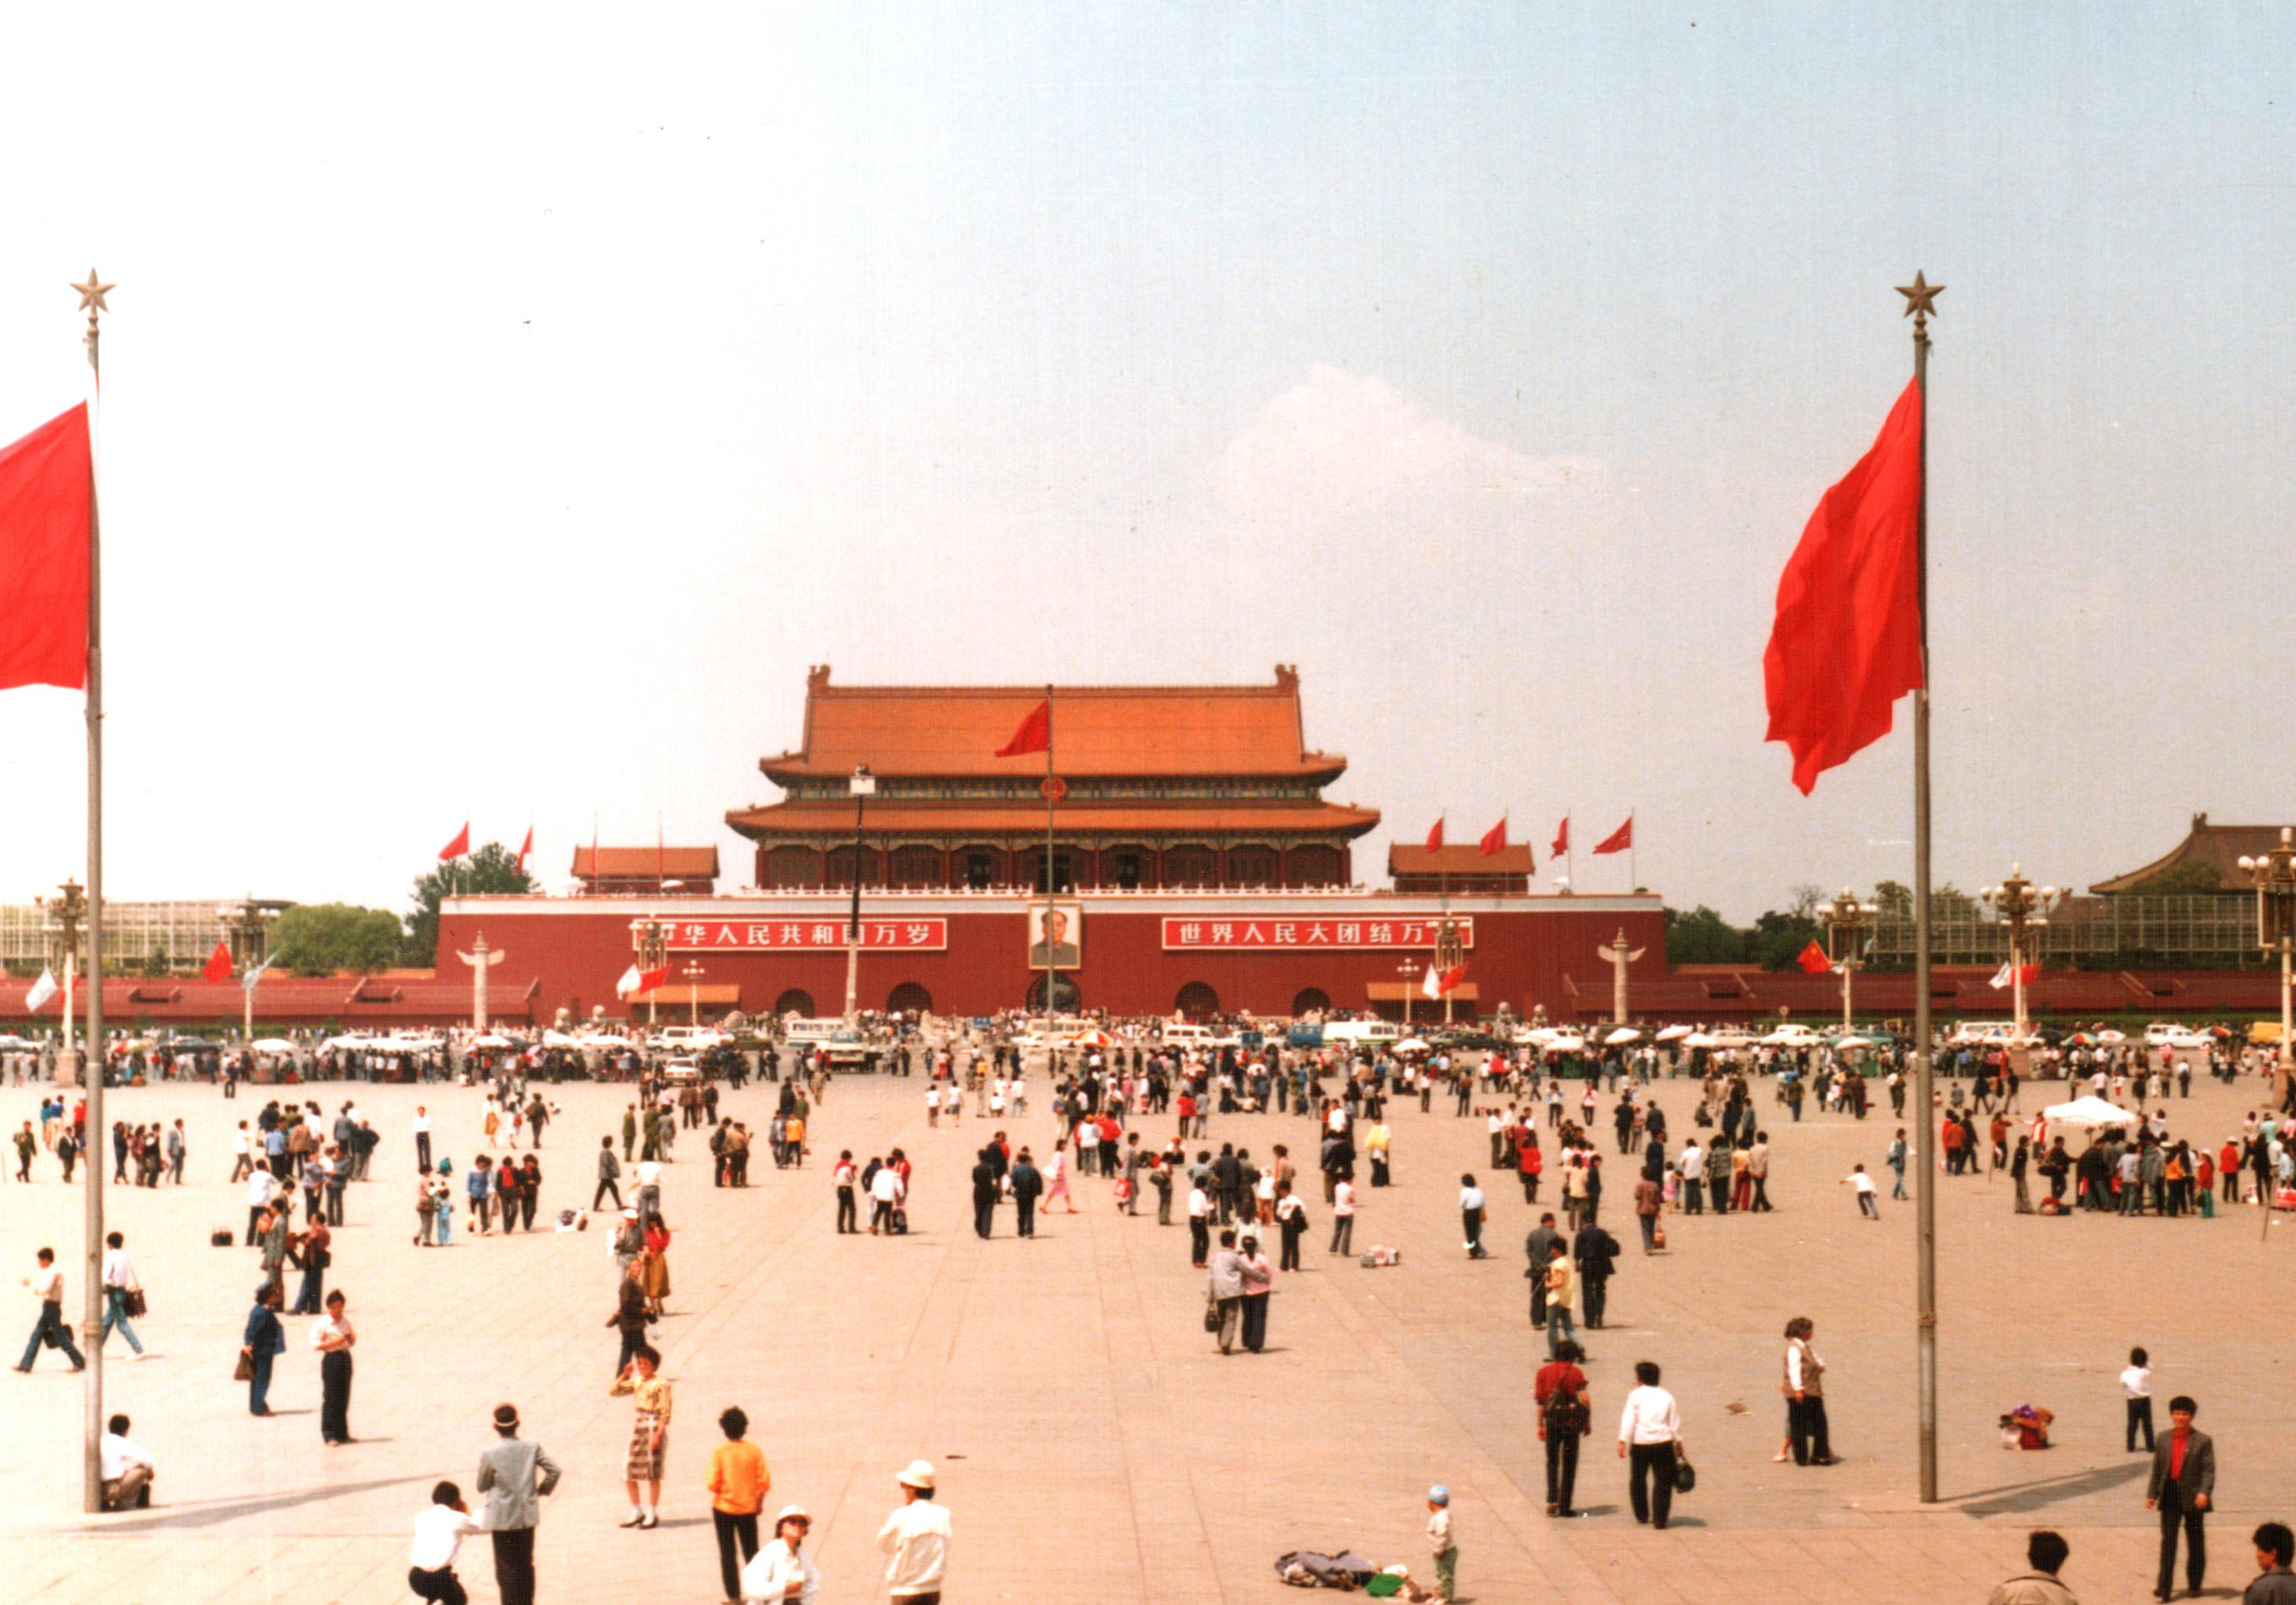 Tiananmen Square in May 1988 (Photo: Wikipedia)